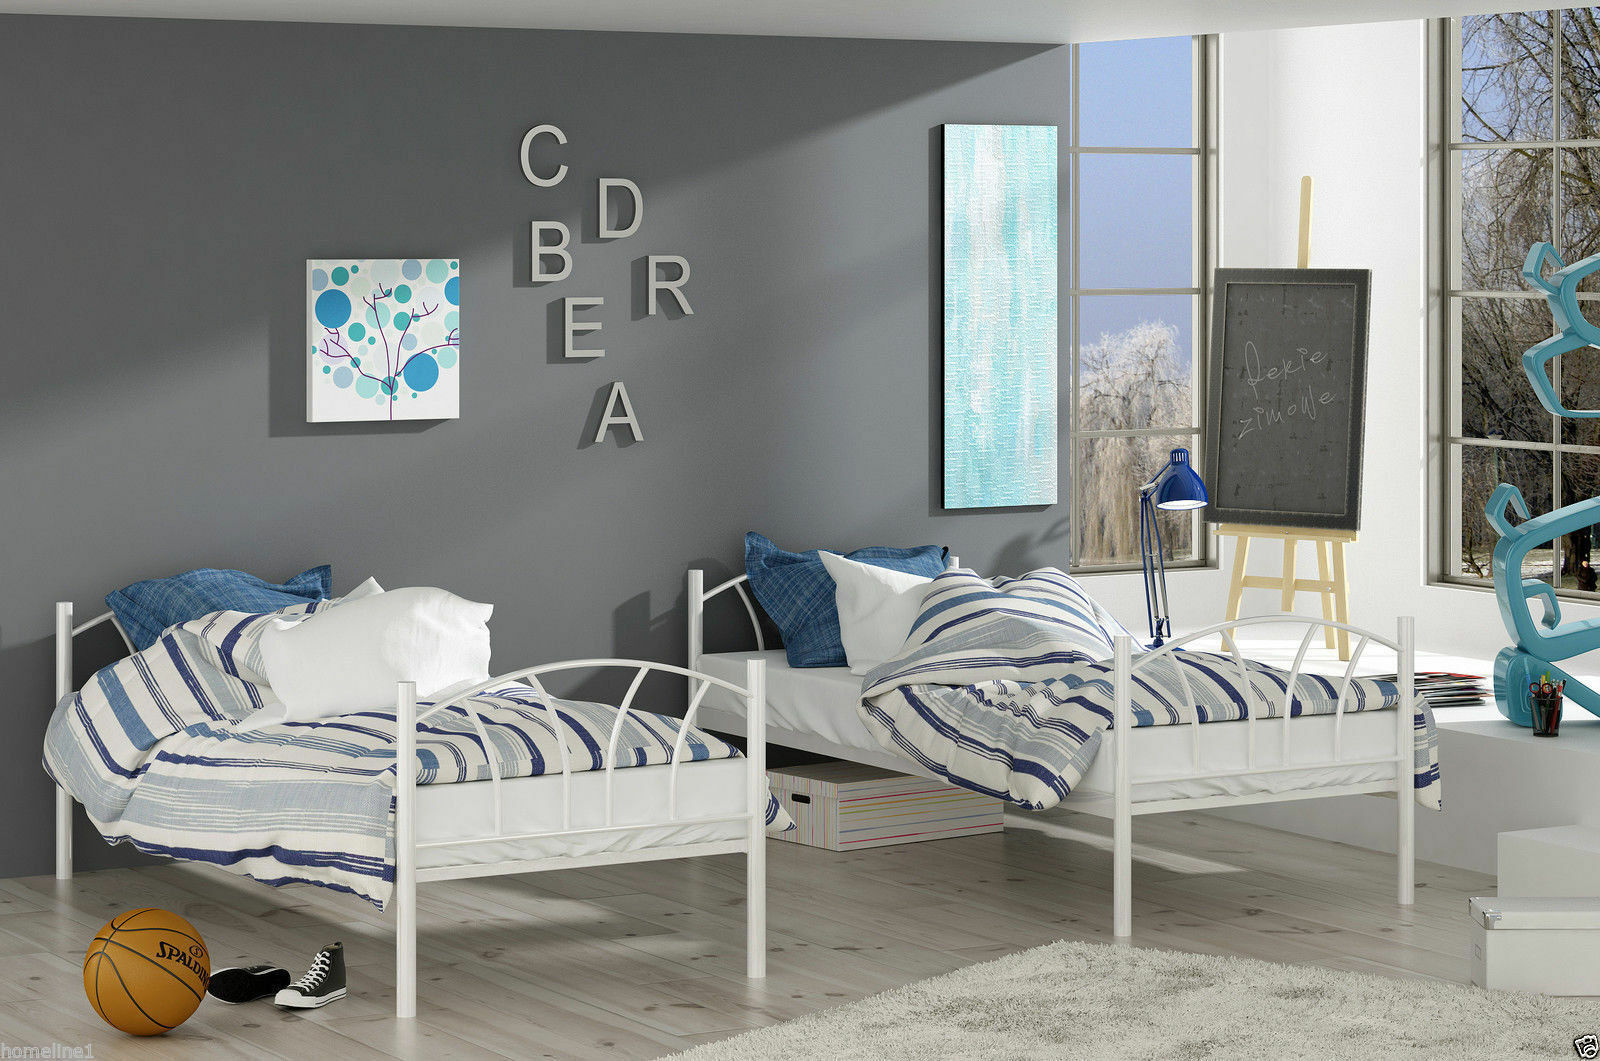 weiss etagenbett hochbett metall 90x200 matratze lattenrost kinderbett bett wei eur 299 00. Black Bedroom Furniture Sets. Home Design Ideas